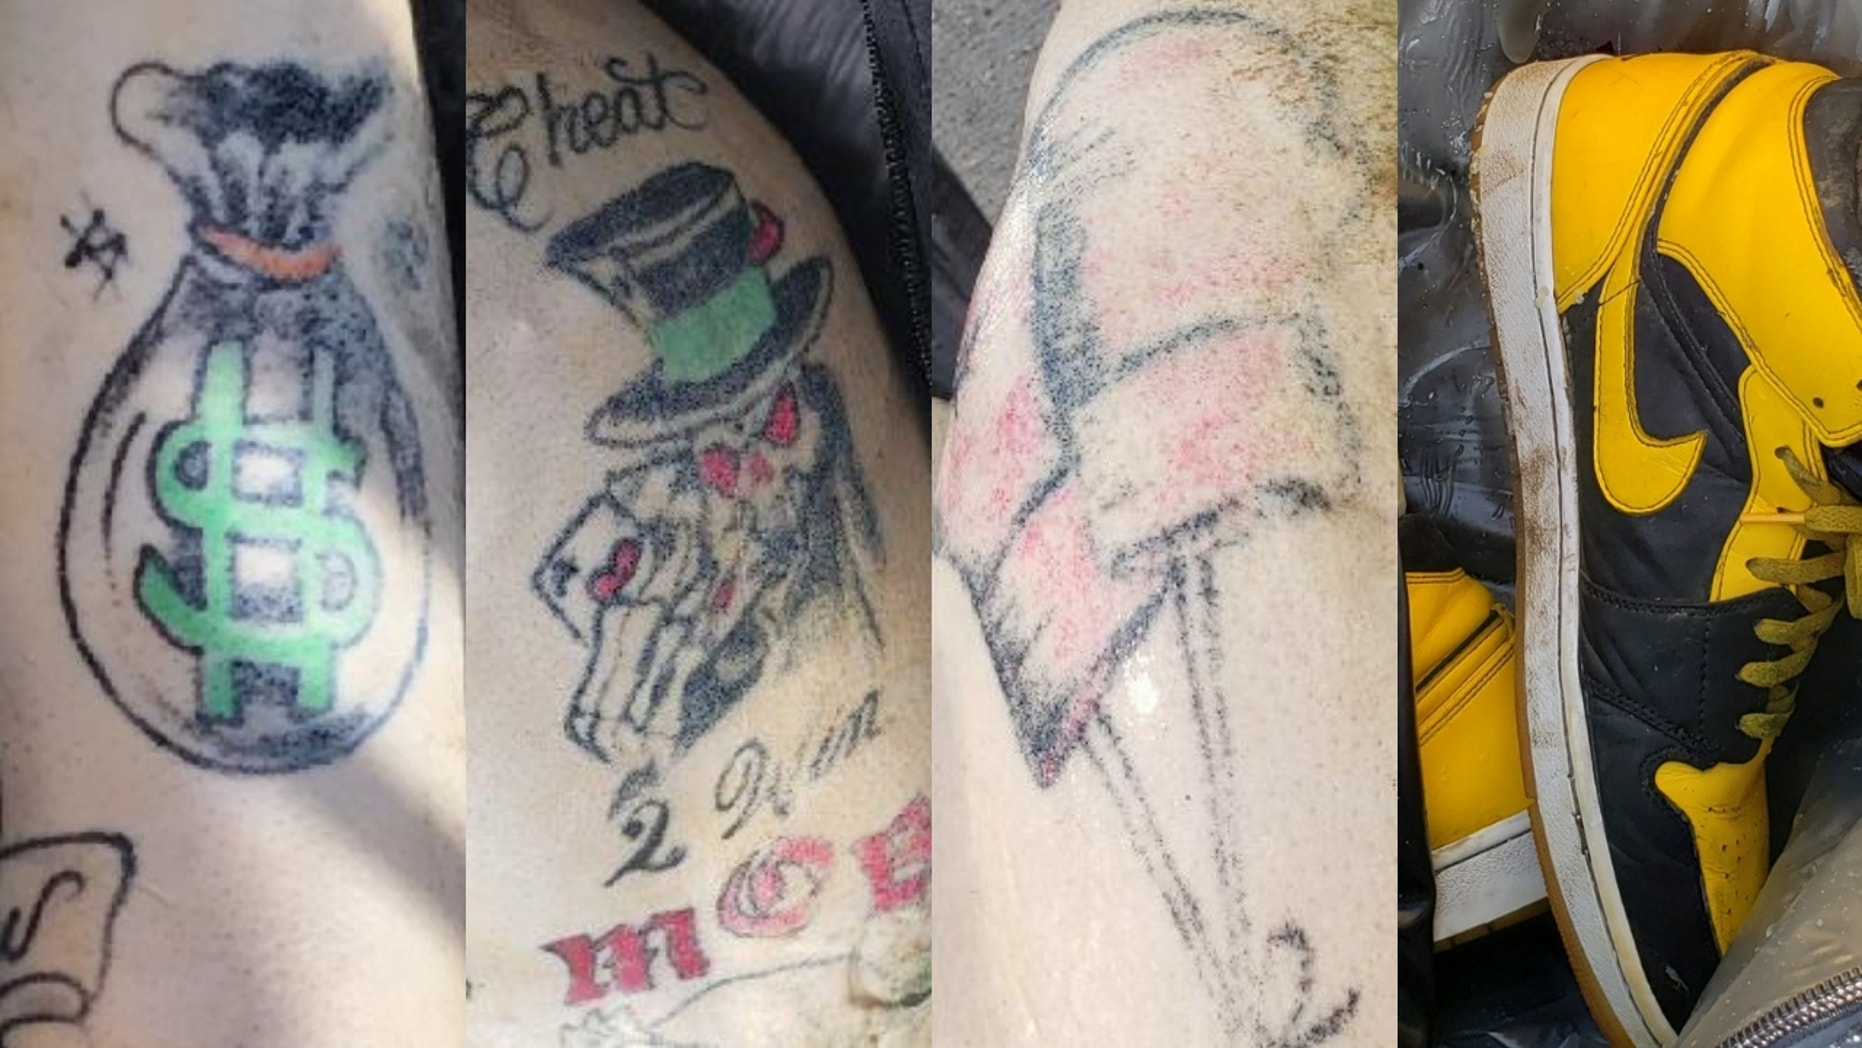 Authorities released photos of a man's tattoos in hopes of identifying the individual whose body was discovered floating in the water off the New York City coast.